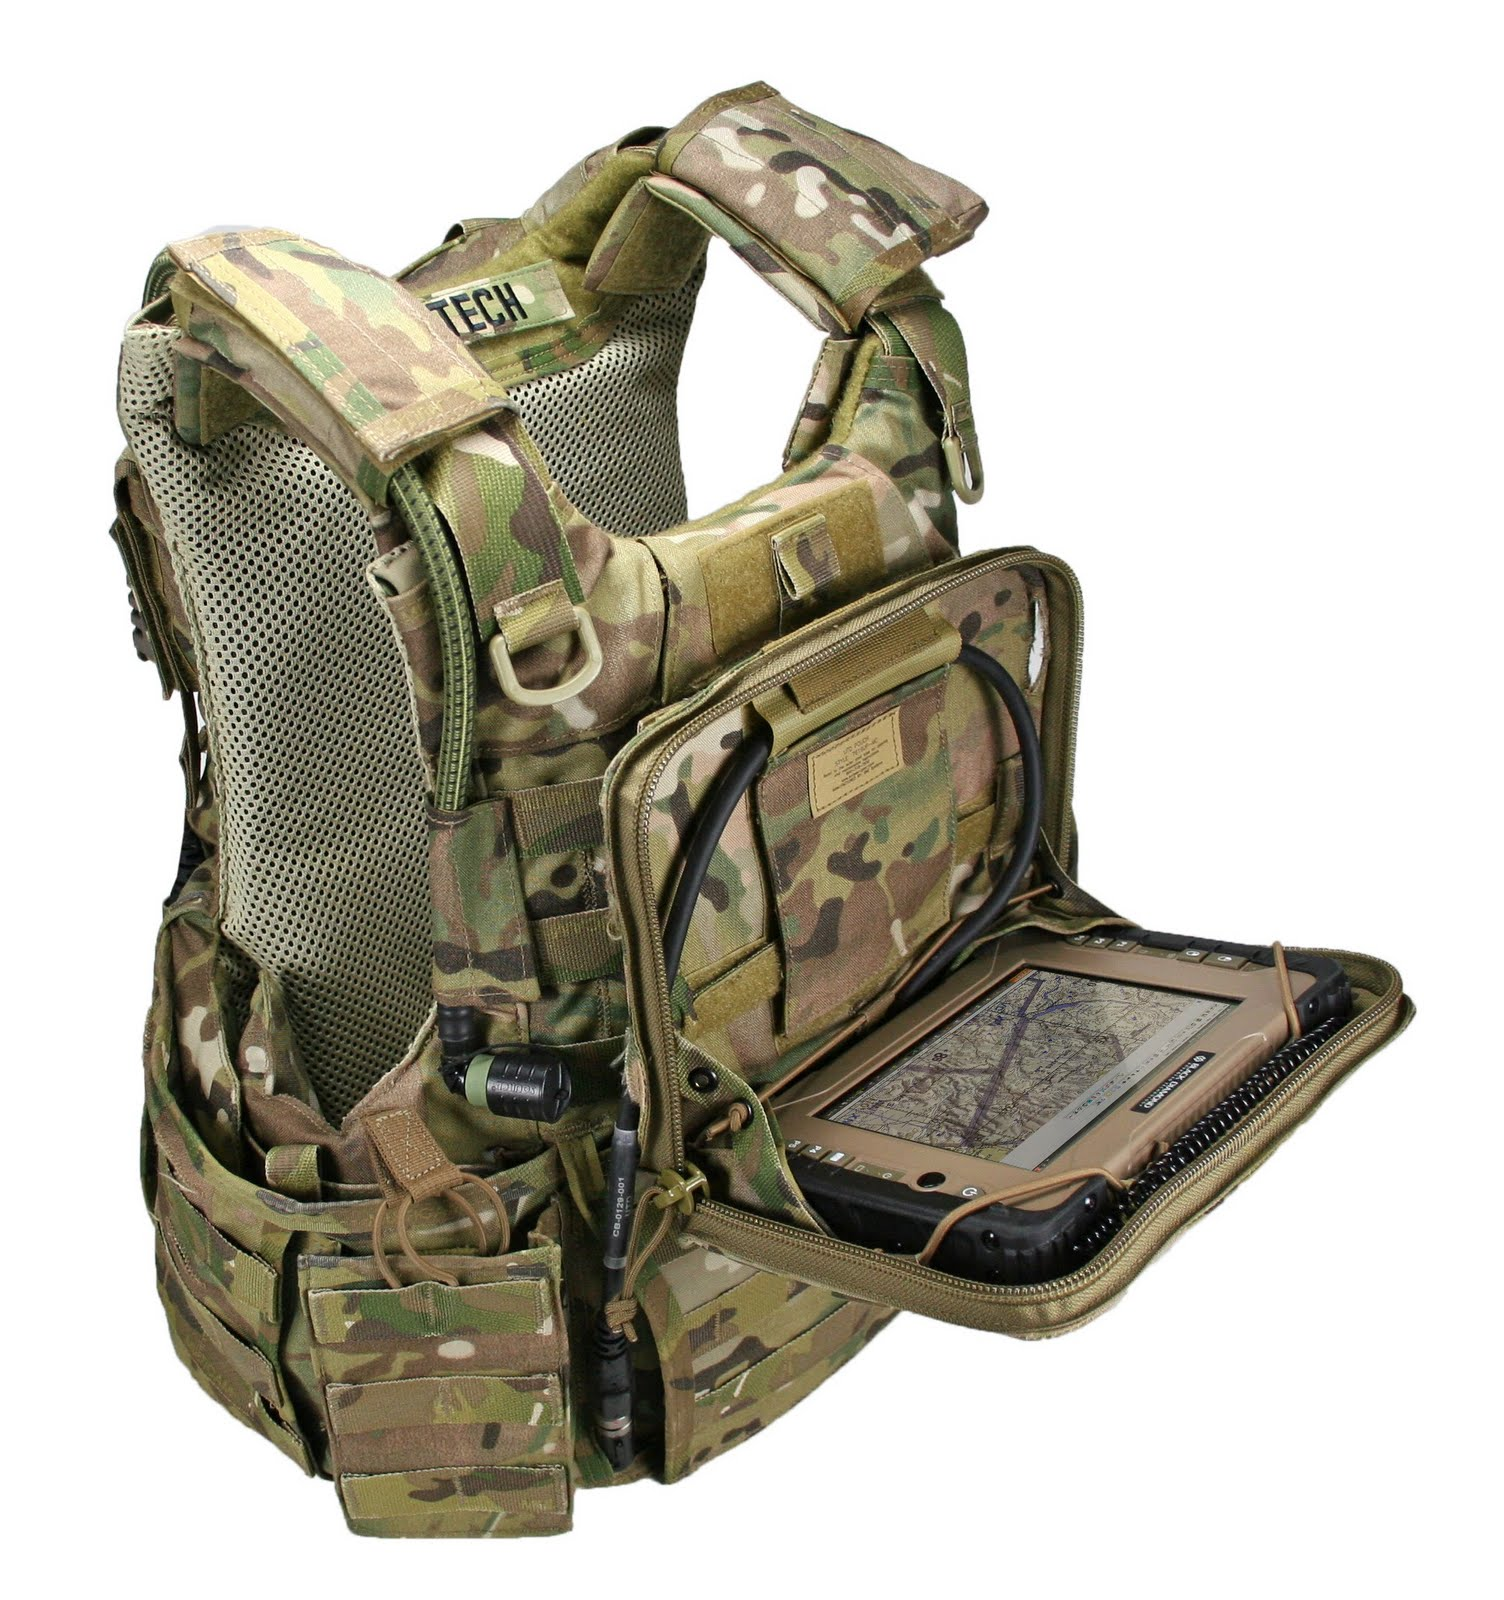 World Military Military Tactical Gear